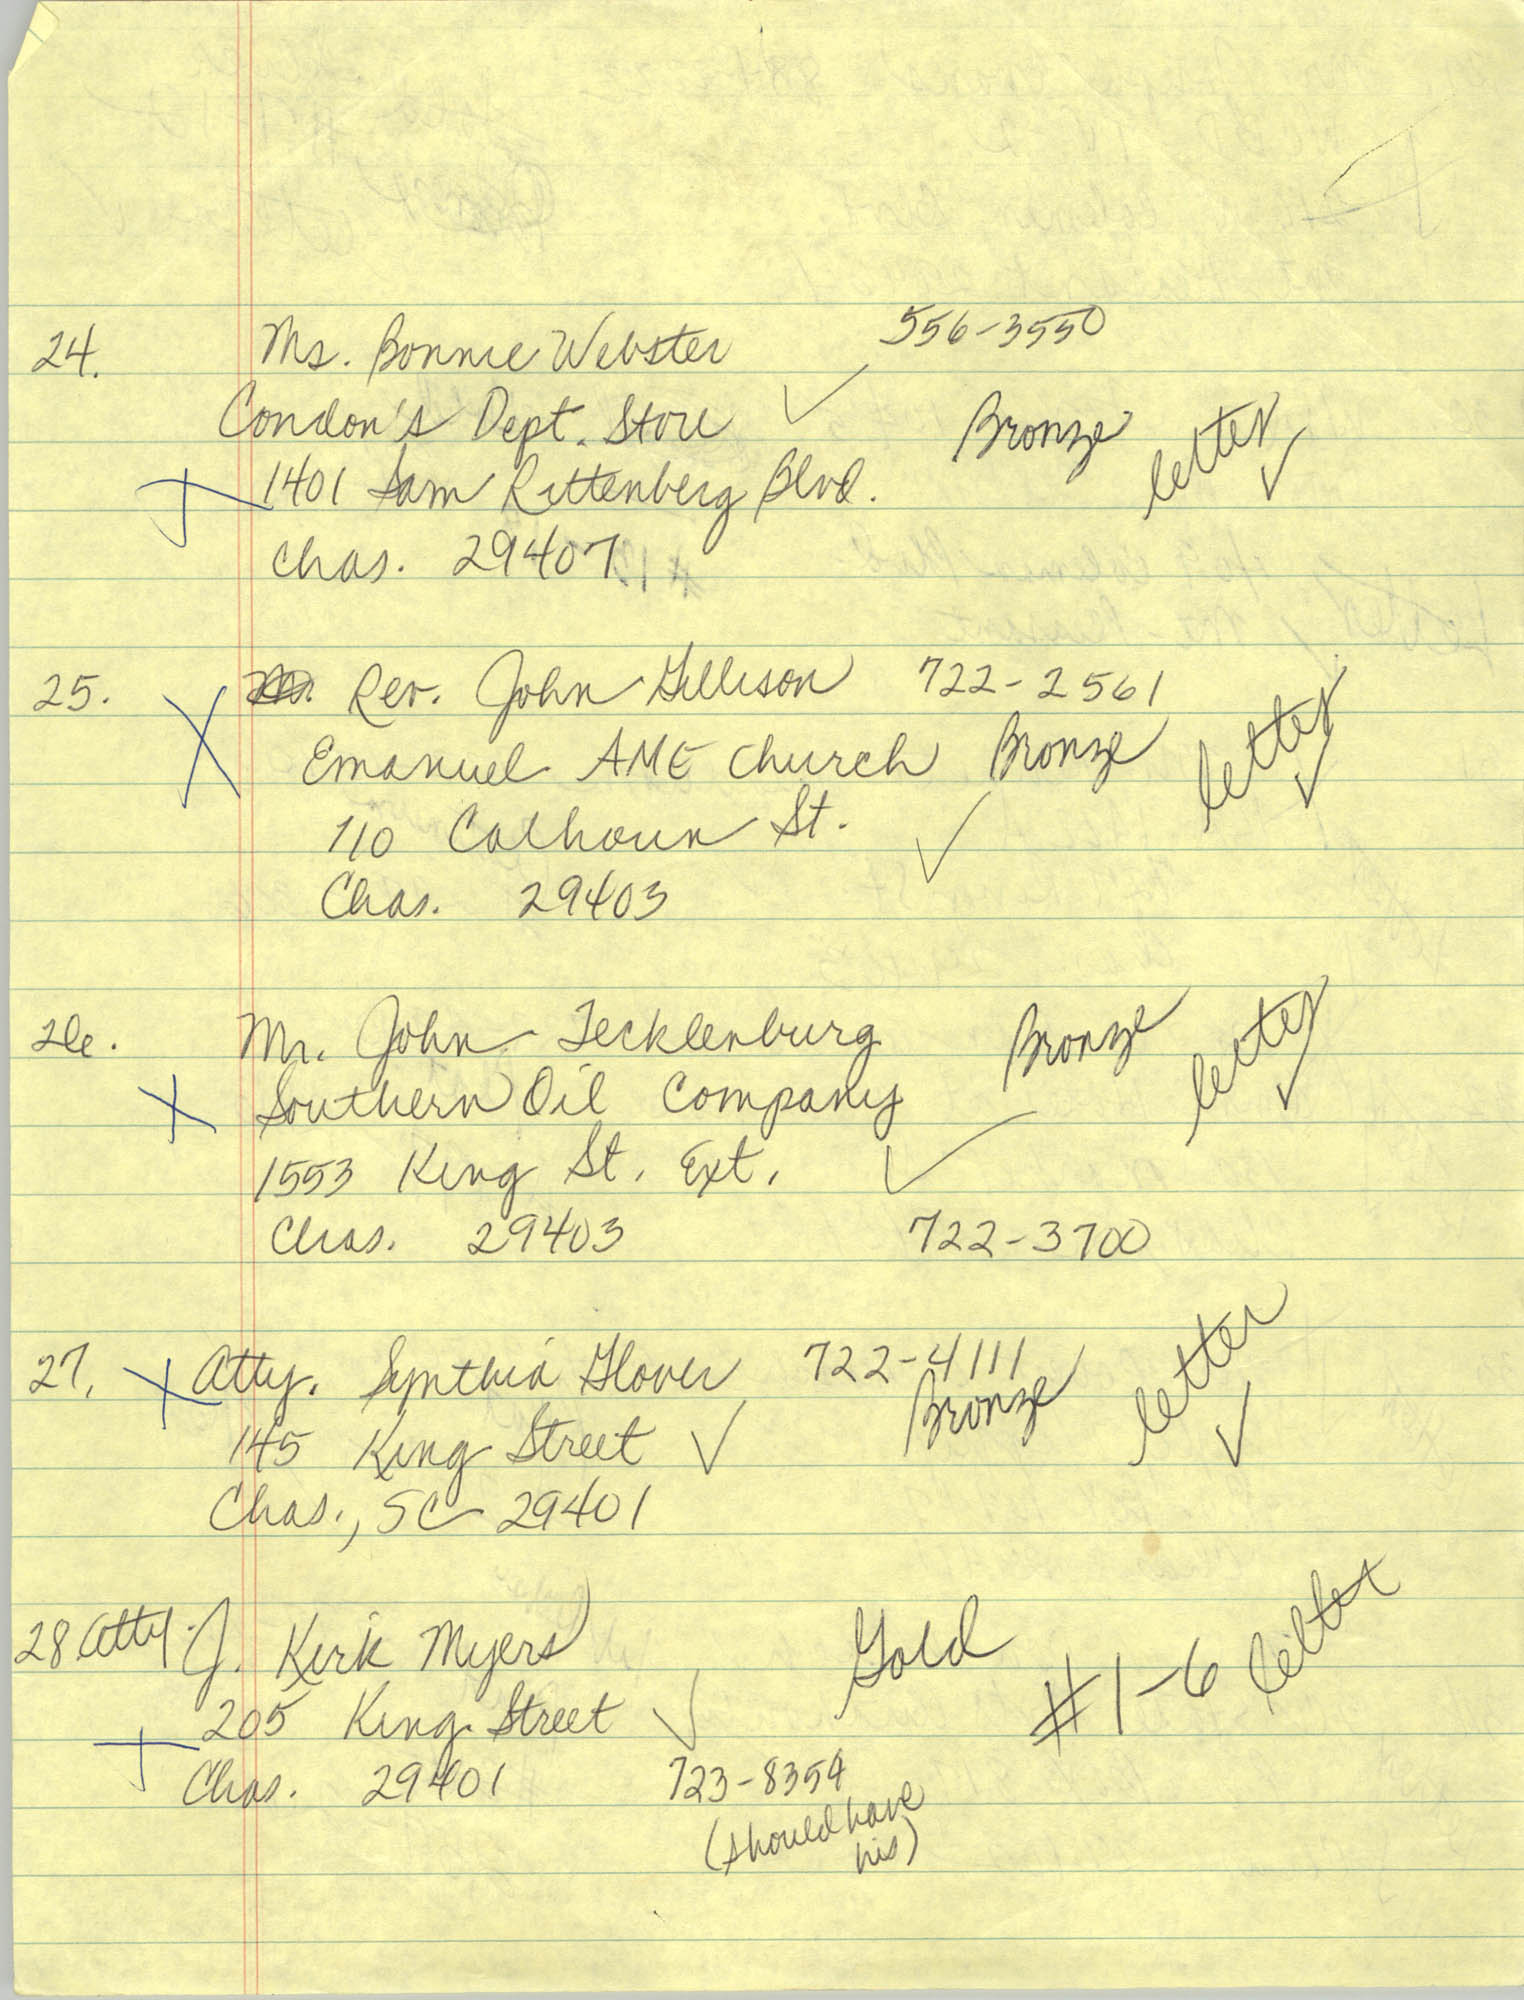 Handwritten Addresses for Tickets, Page 11